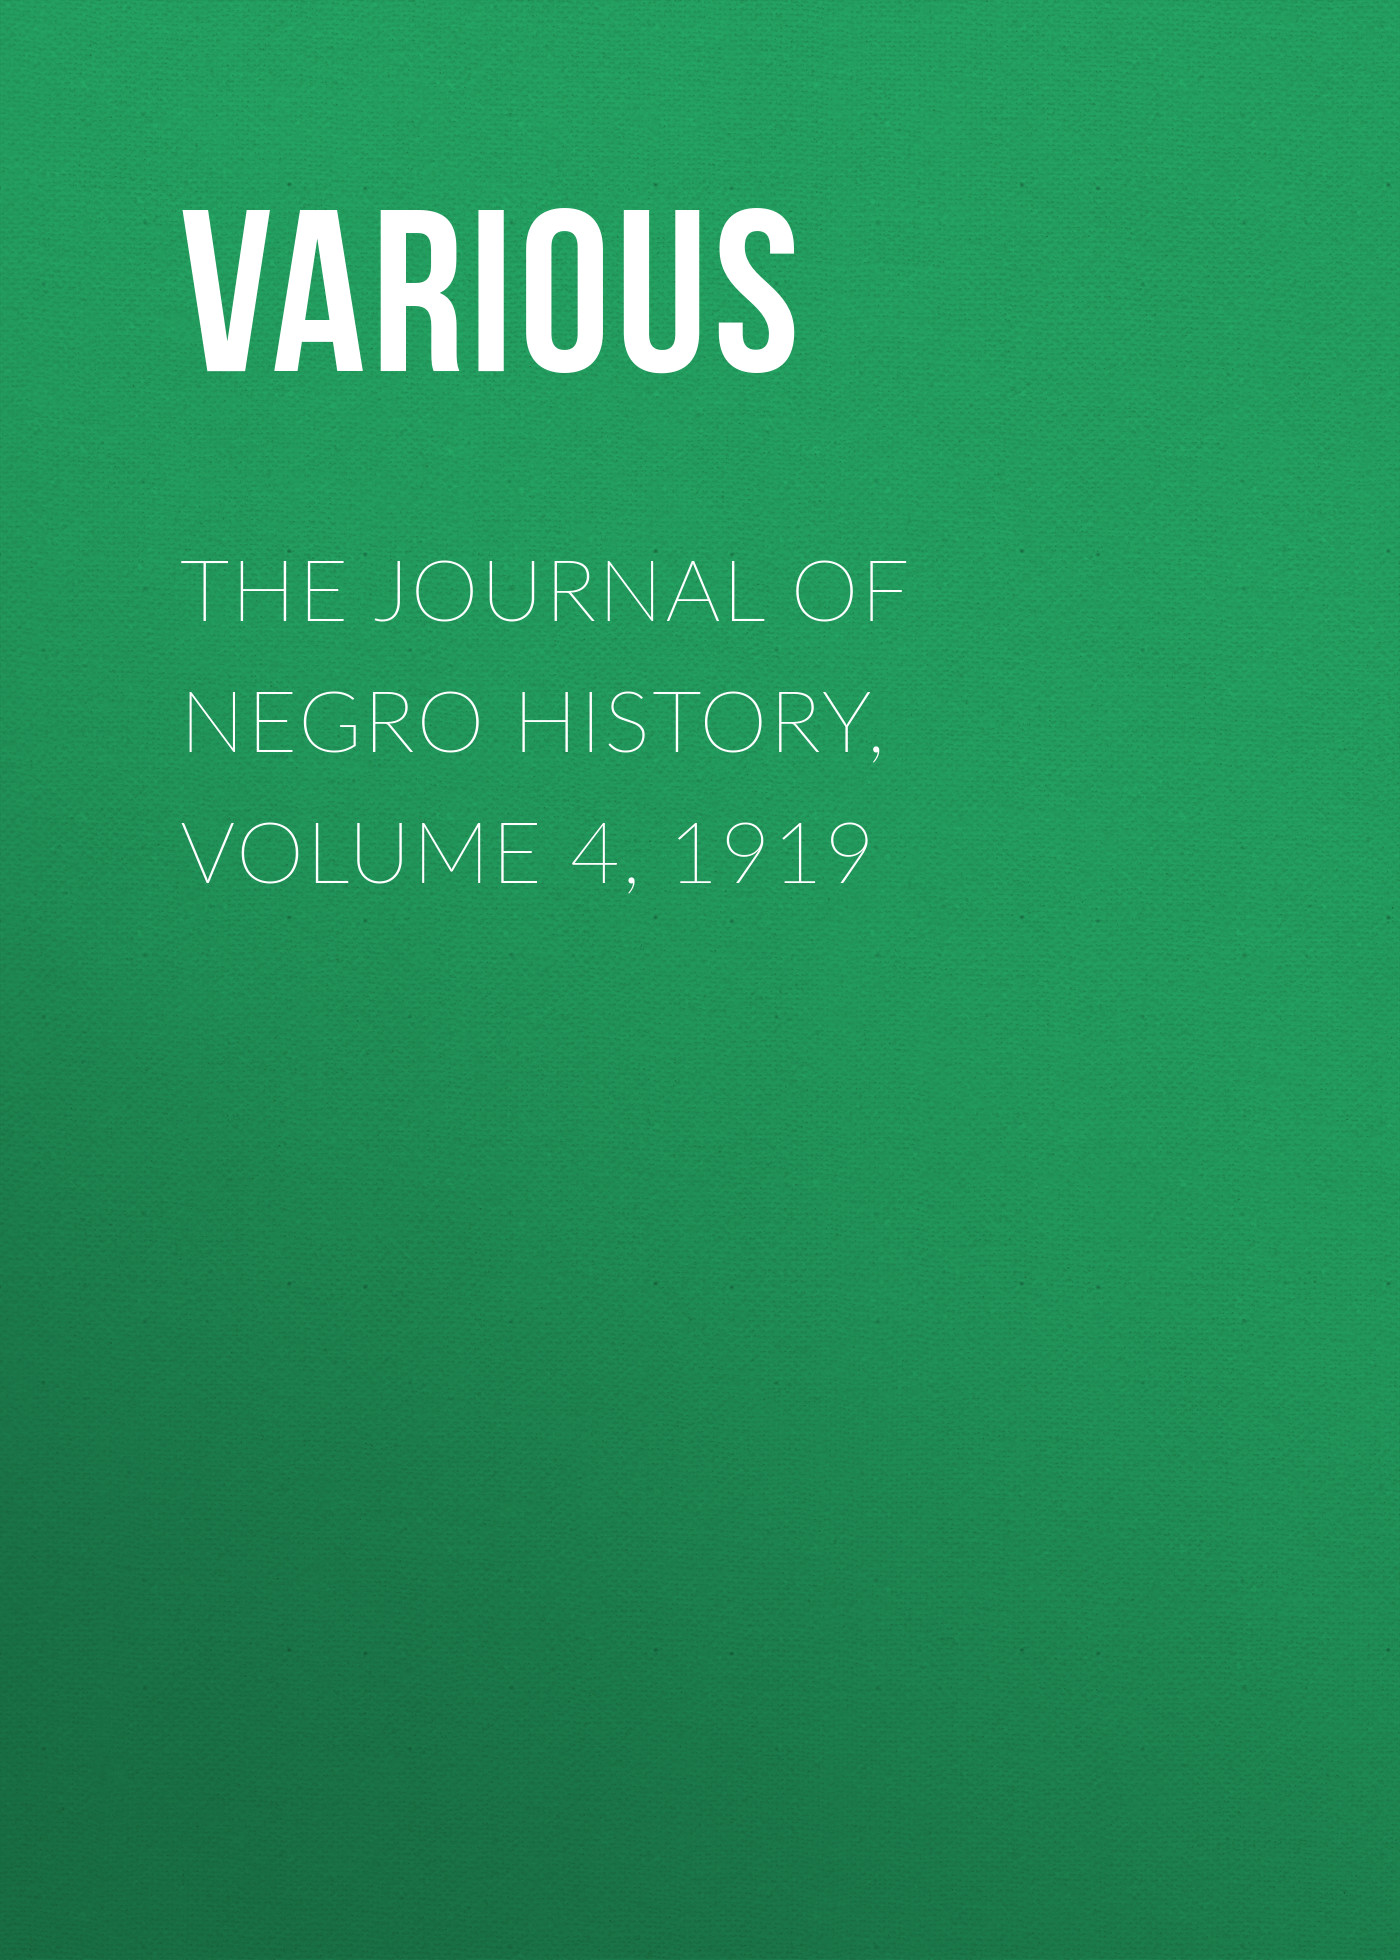 Various The Journal of Negro History, Volume 4, 1919